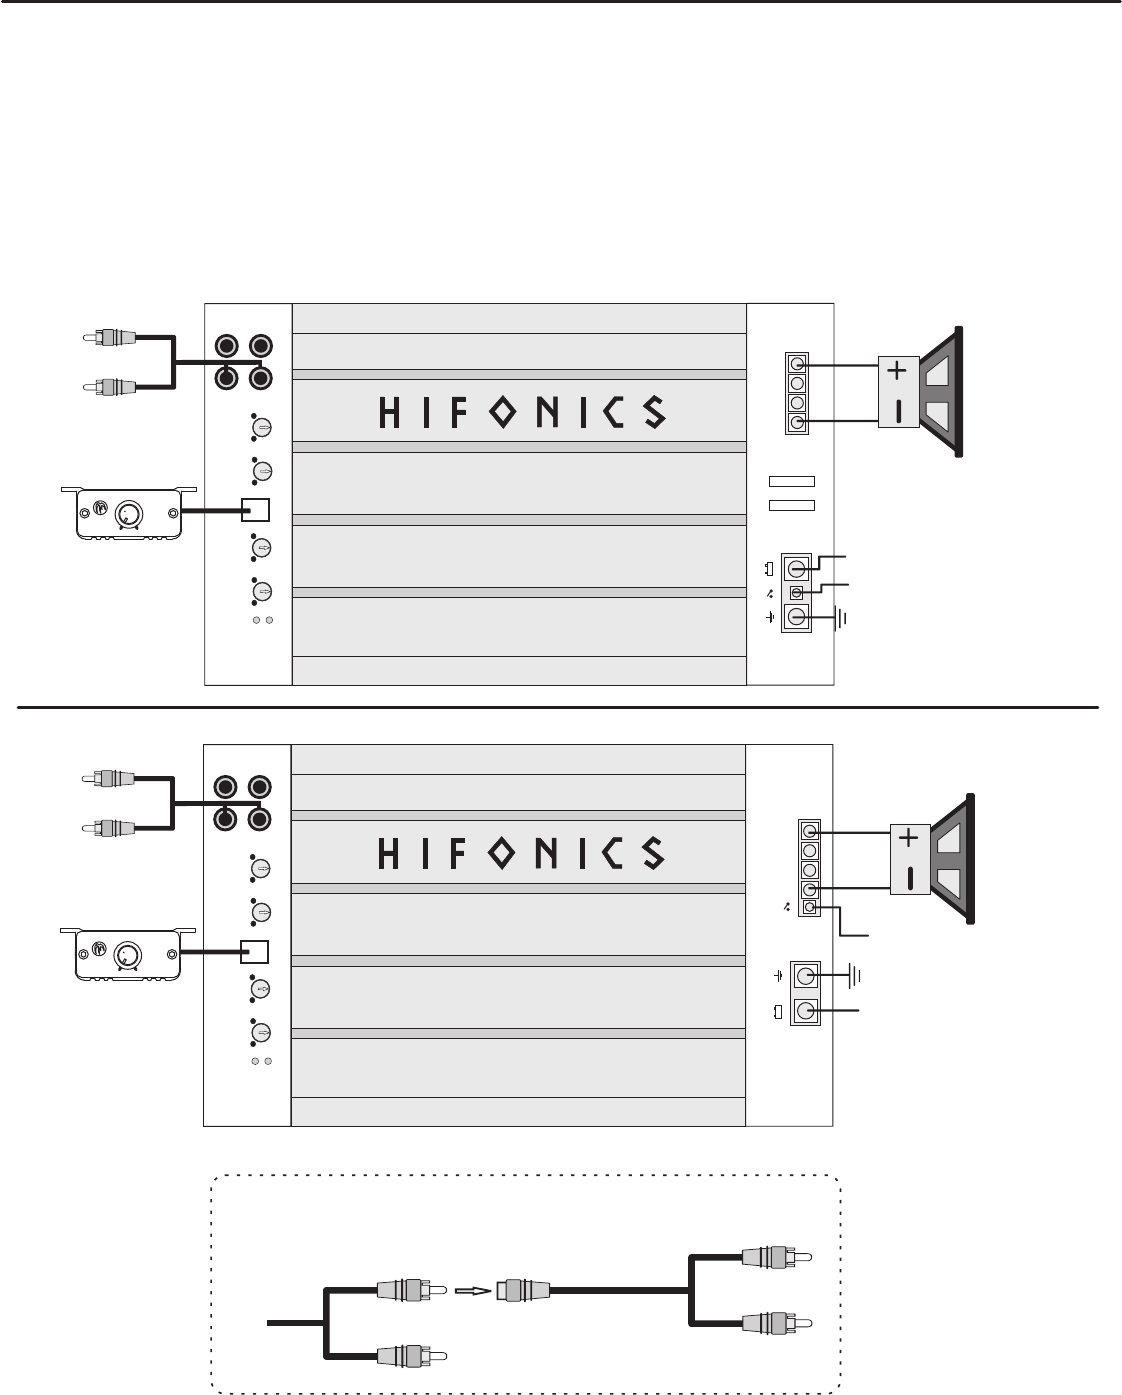 Hifonics amp wiring diagram wiring engine wiring harness 1996 2 2 page 8 of hifionics stereo amplifier zrx12002 user guide 3eba0ed5 85d3 4219 a18d 973d812d063f bg8 zrx12002htmlp8 hifonics amp wiring diagram wiring asfbconference2016 Choice Image